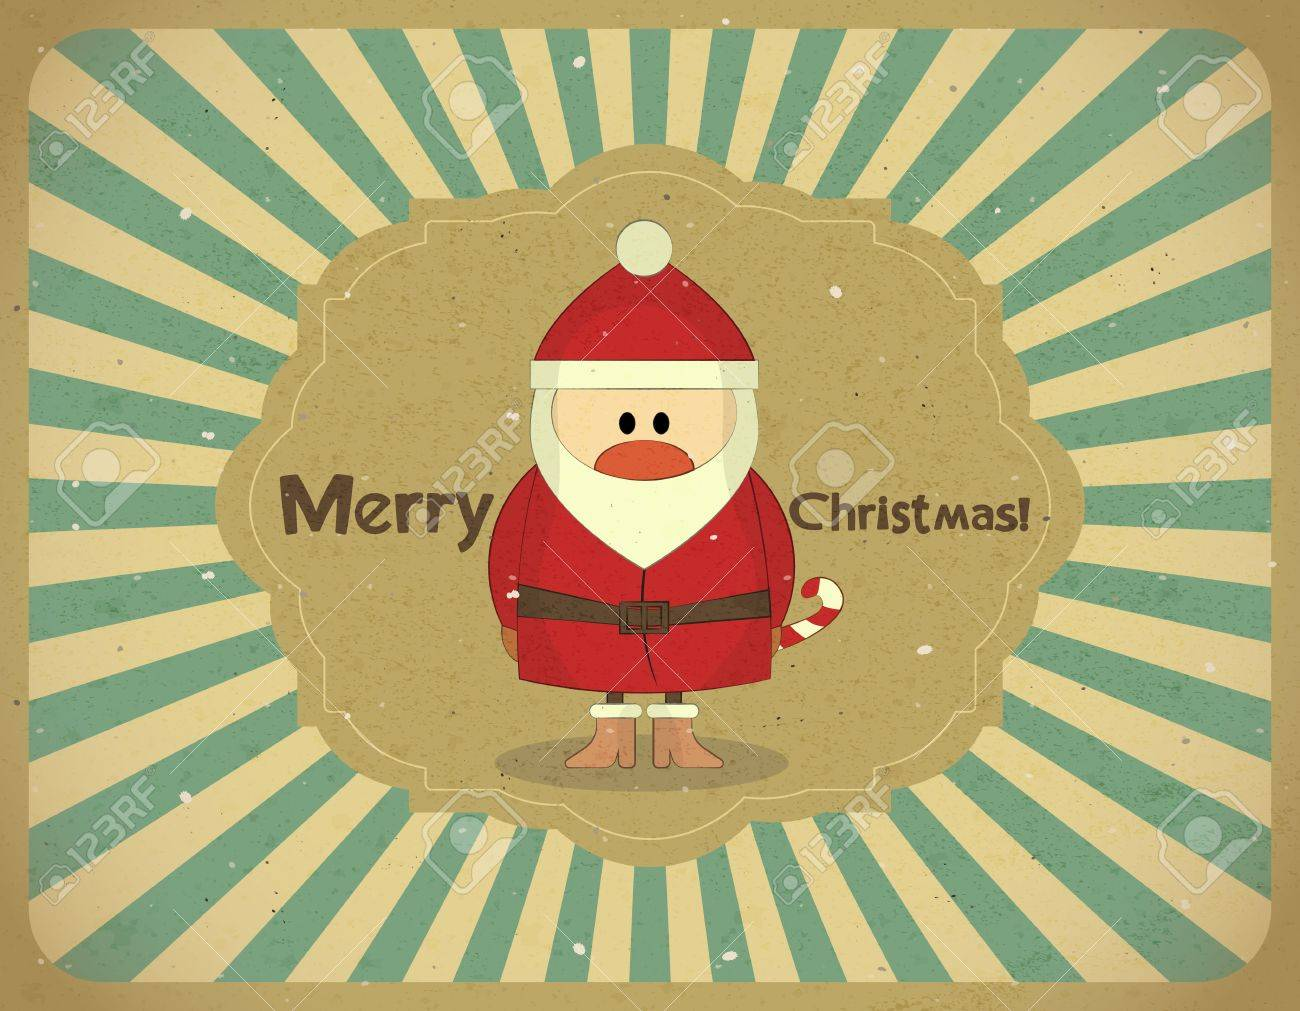 Santa Claus on grunge background, Merry Christmas postcard in Retro style - vector illustration Stock Vector - 15171520